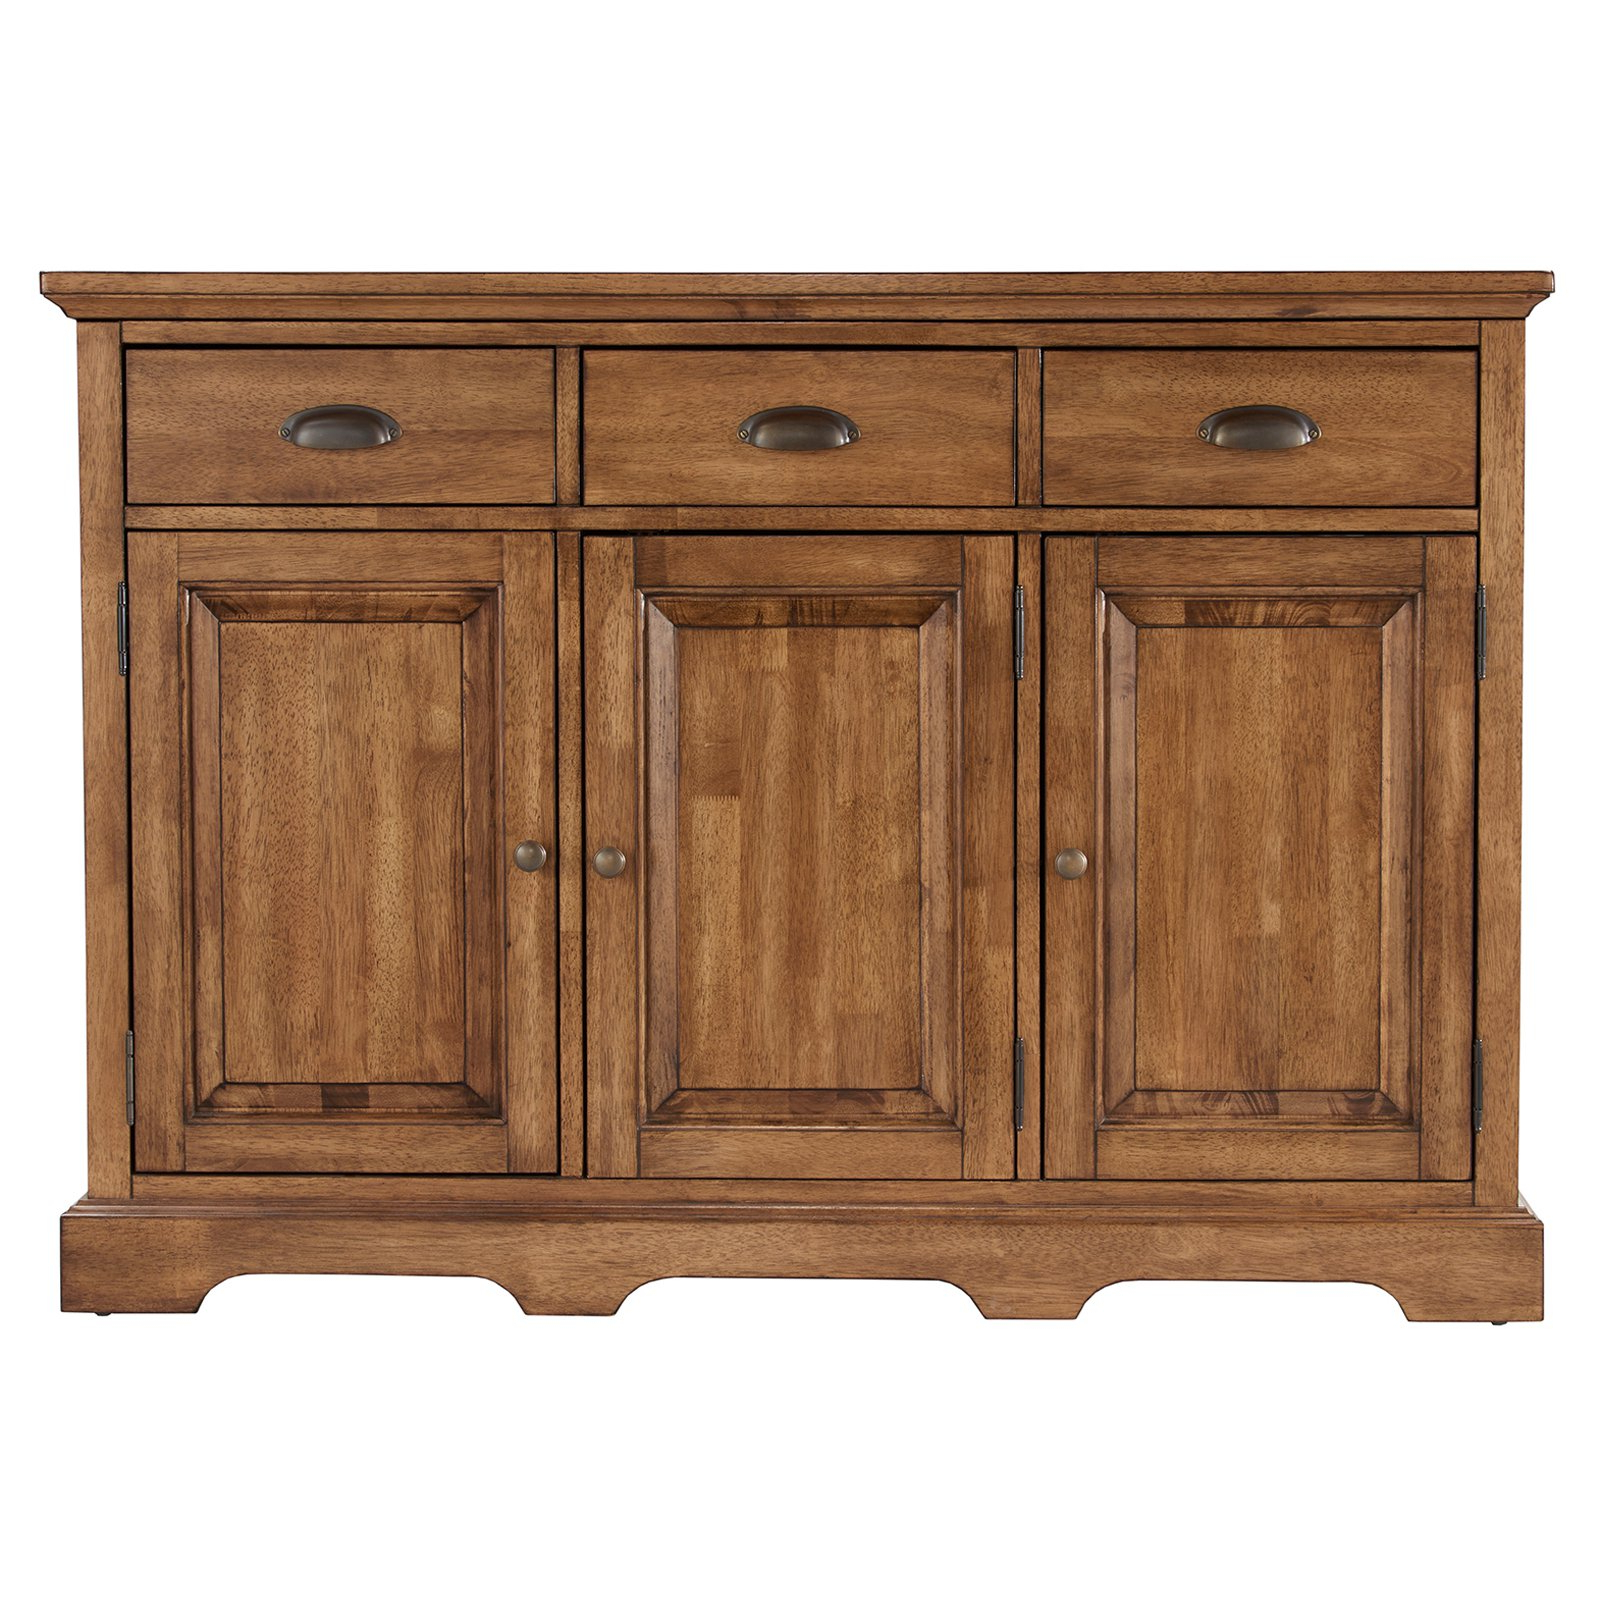 Weston Home 3 Door Server In 2019 | Products | Wood Cabinets In Courtdale Sideboards (View 18 of 20)